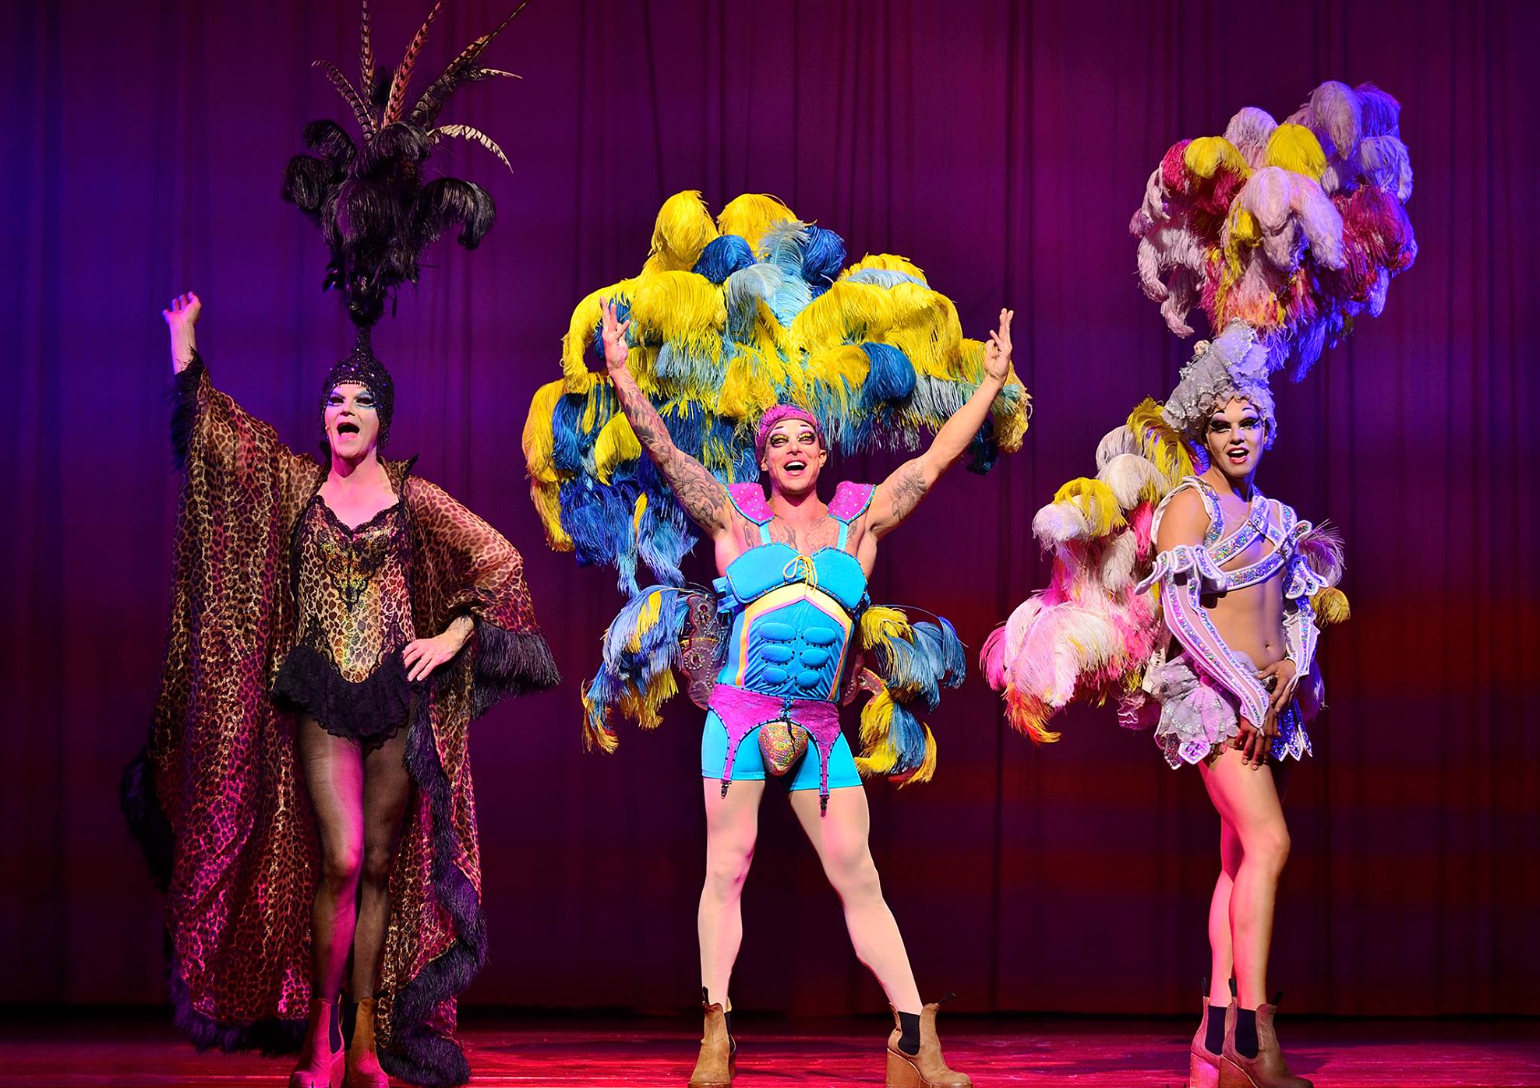 Priscilla Queen of the Desert UK Tour starring Duncan James